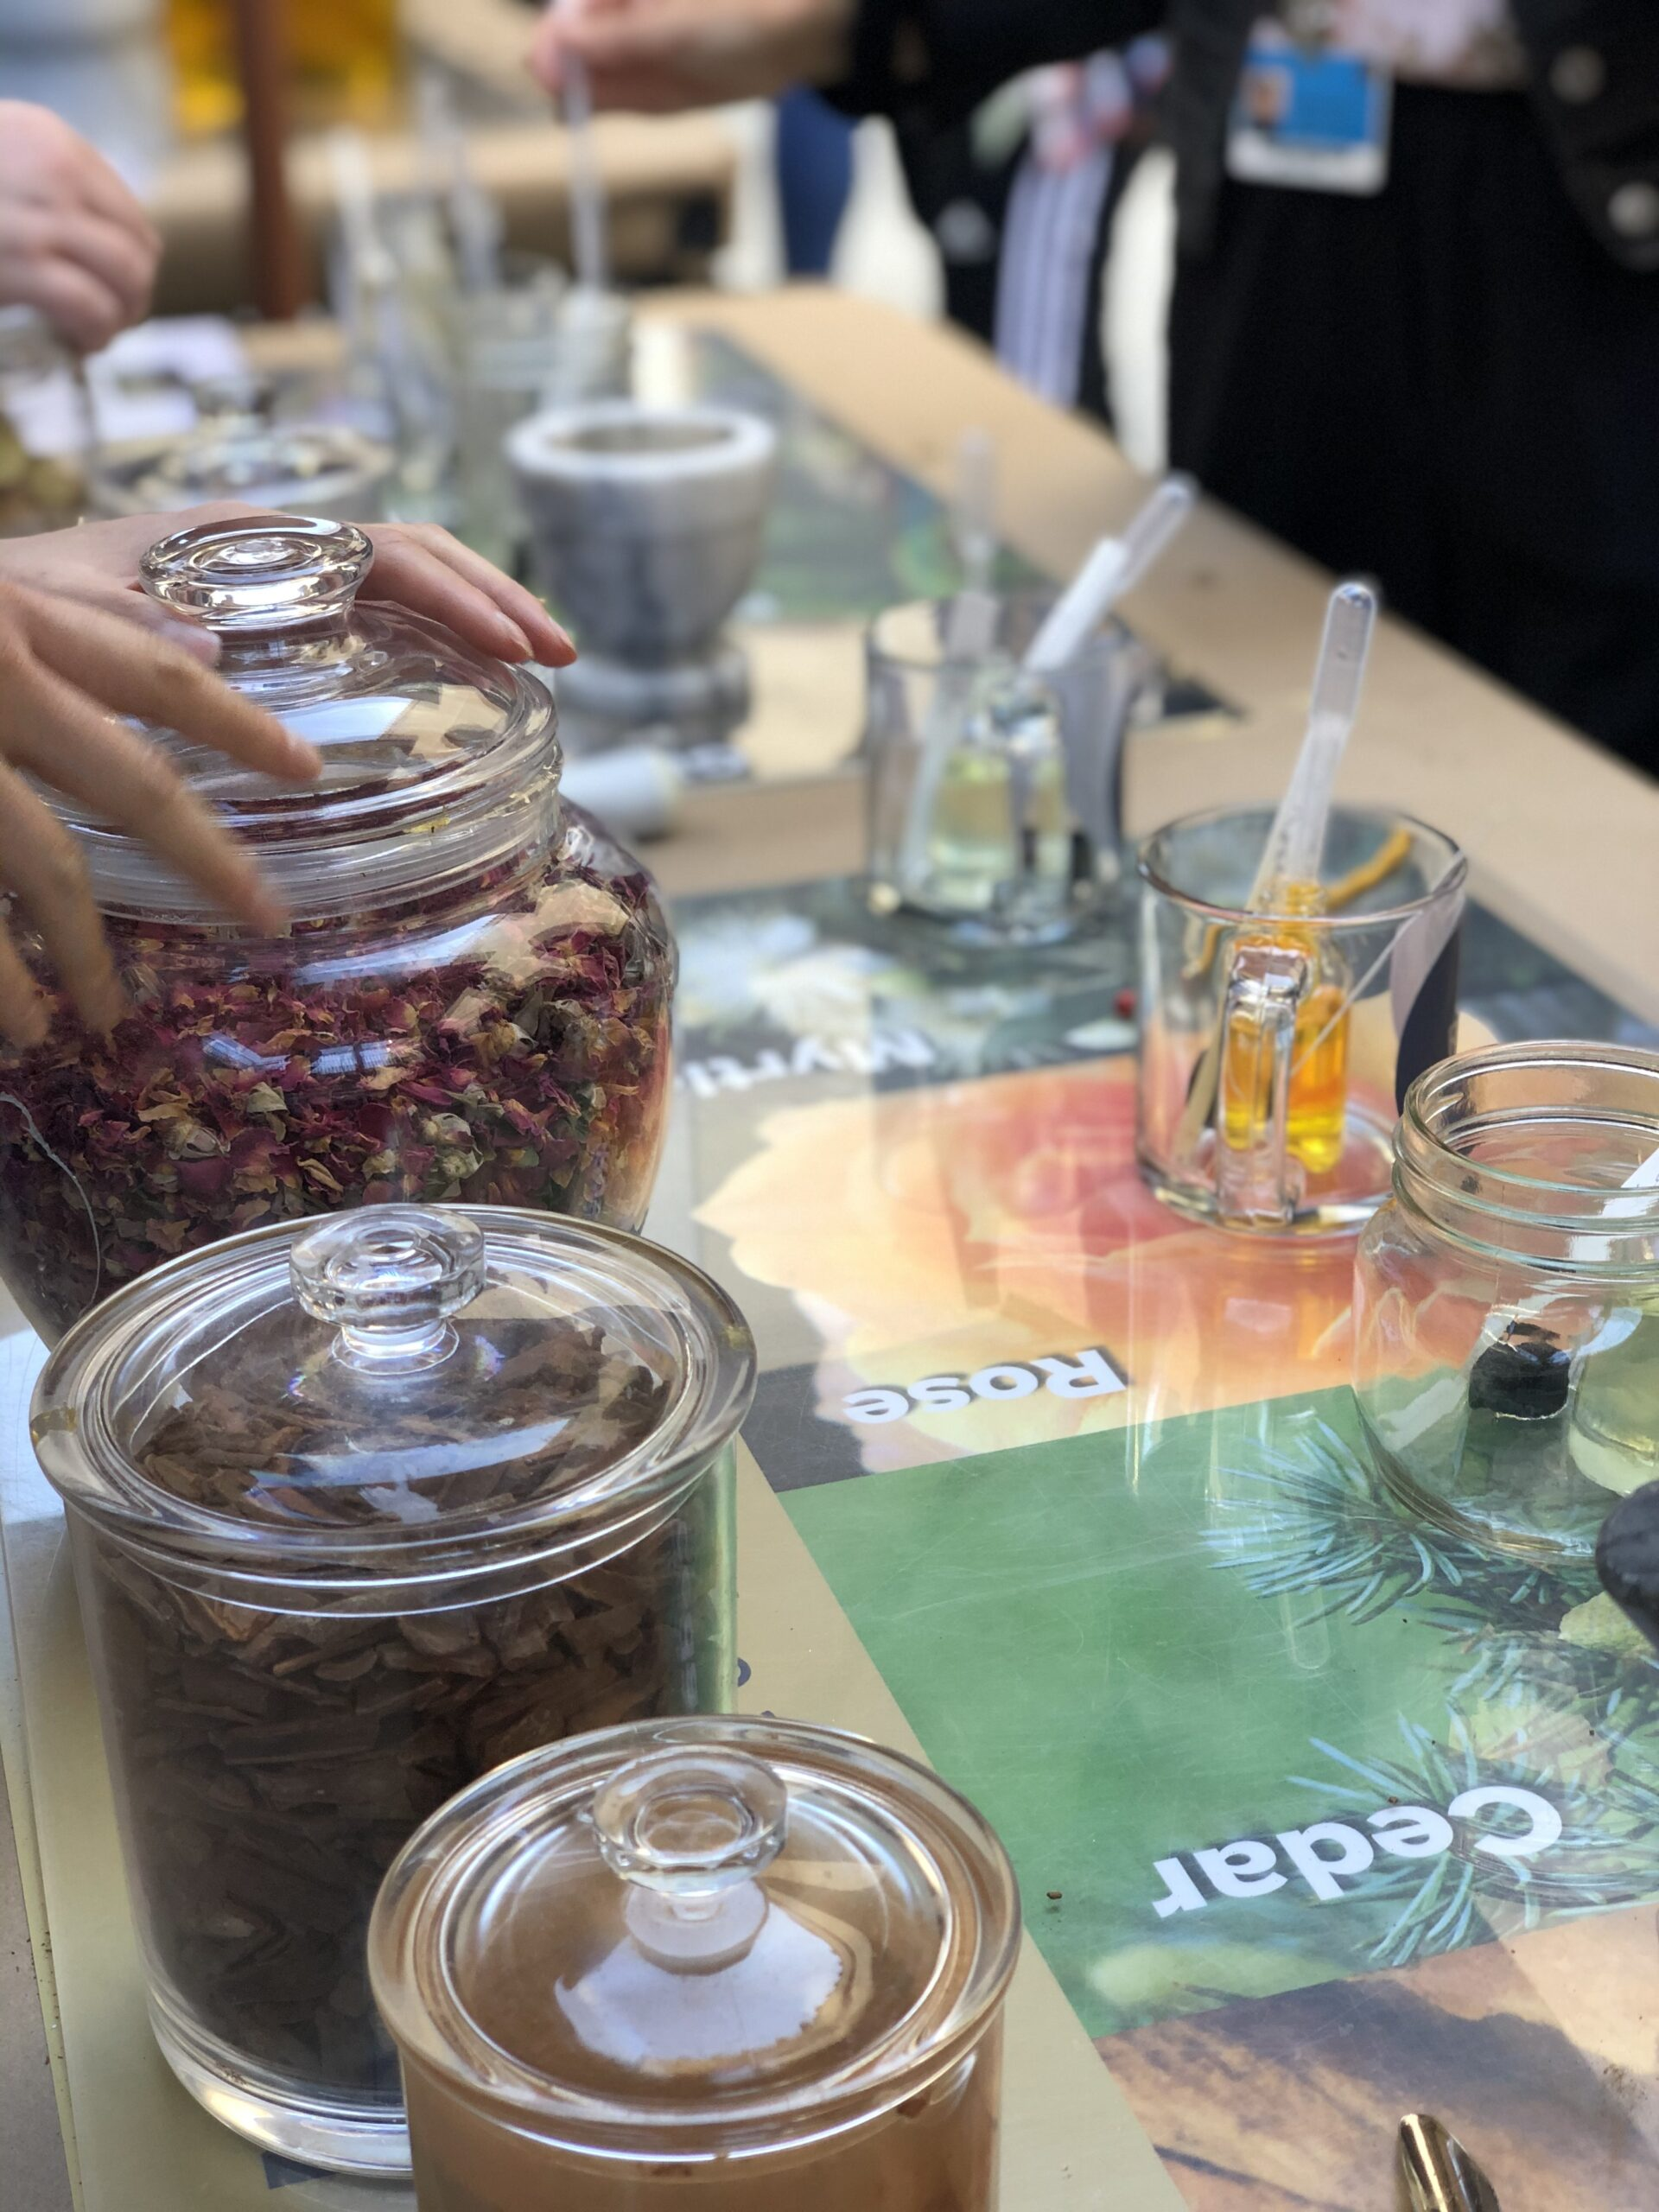 A table shows jars with flower petals and other ingredients used in perfume making